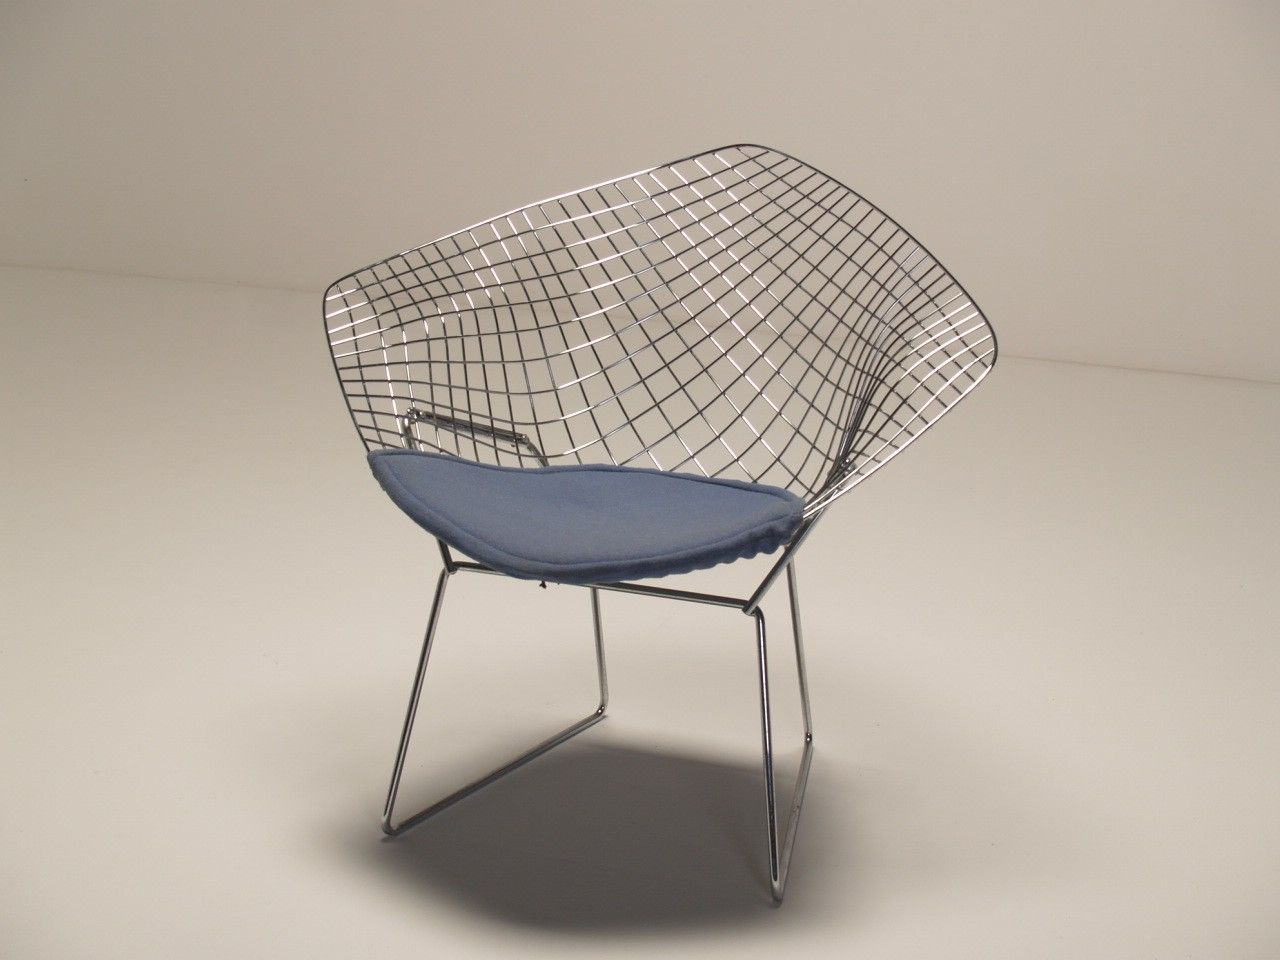 Bertoia diamond chair vintage - Harry Bertoia Diamond Chair A Later Reproduction Maker Unknown Of A Harry Bertoia